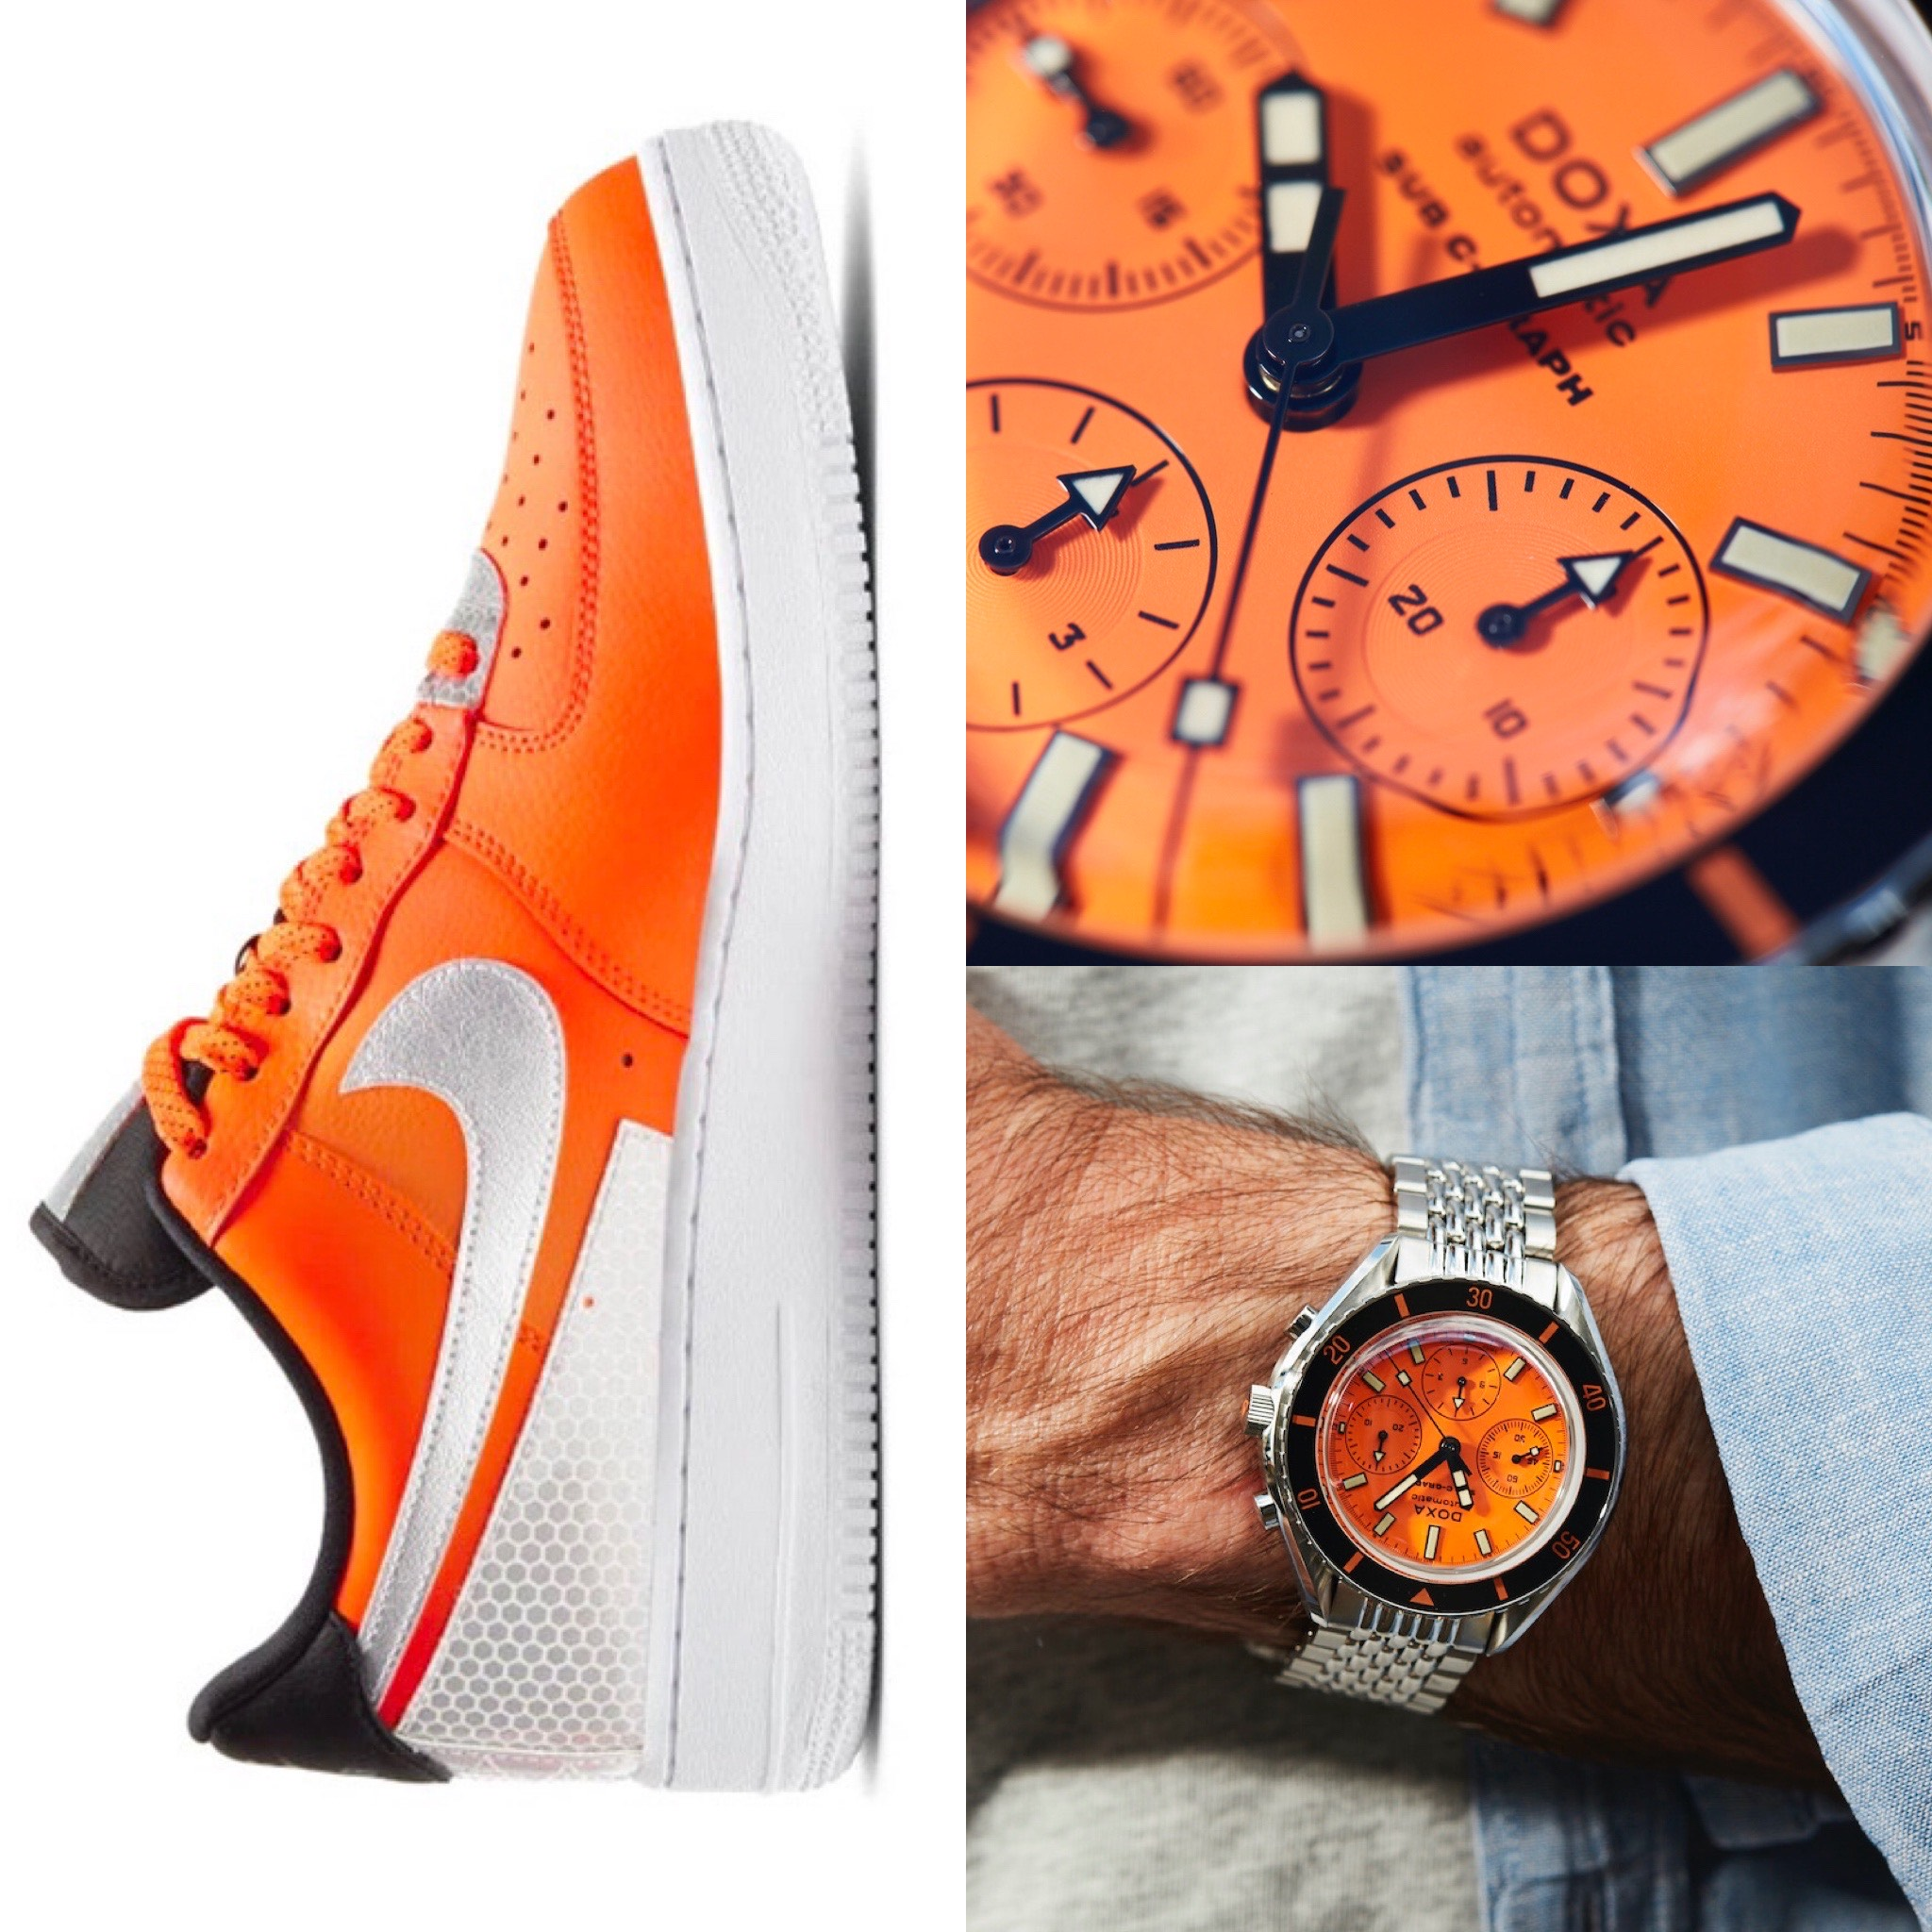 #Kicktock: We pair Nike's latest drop with the DOXA SUB 200 C-Graph, and magic happens